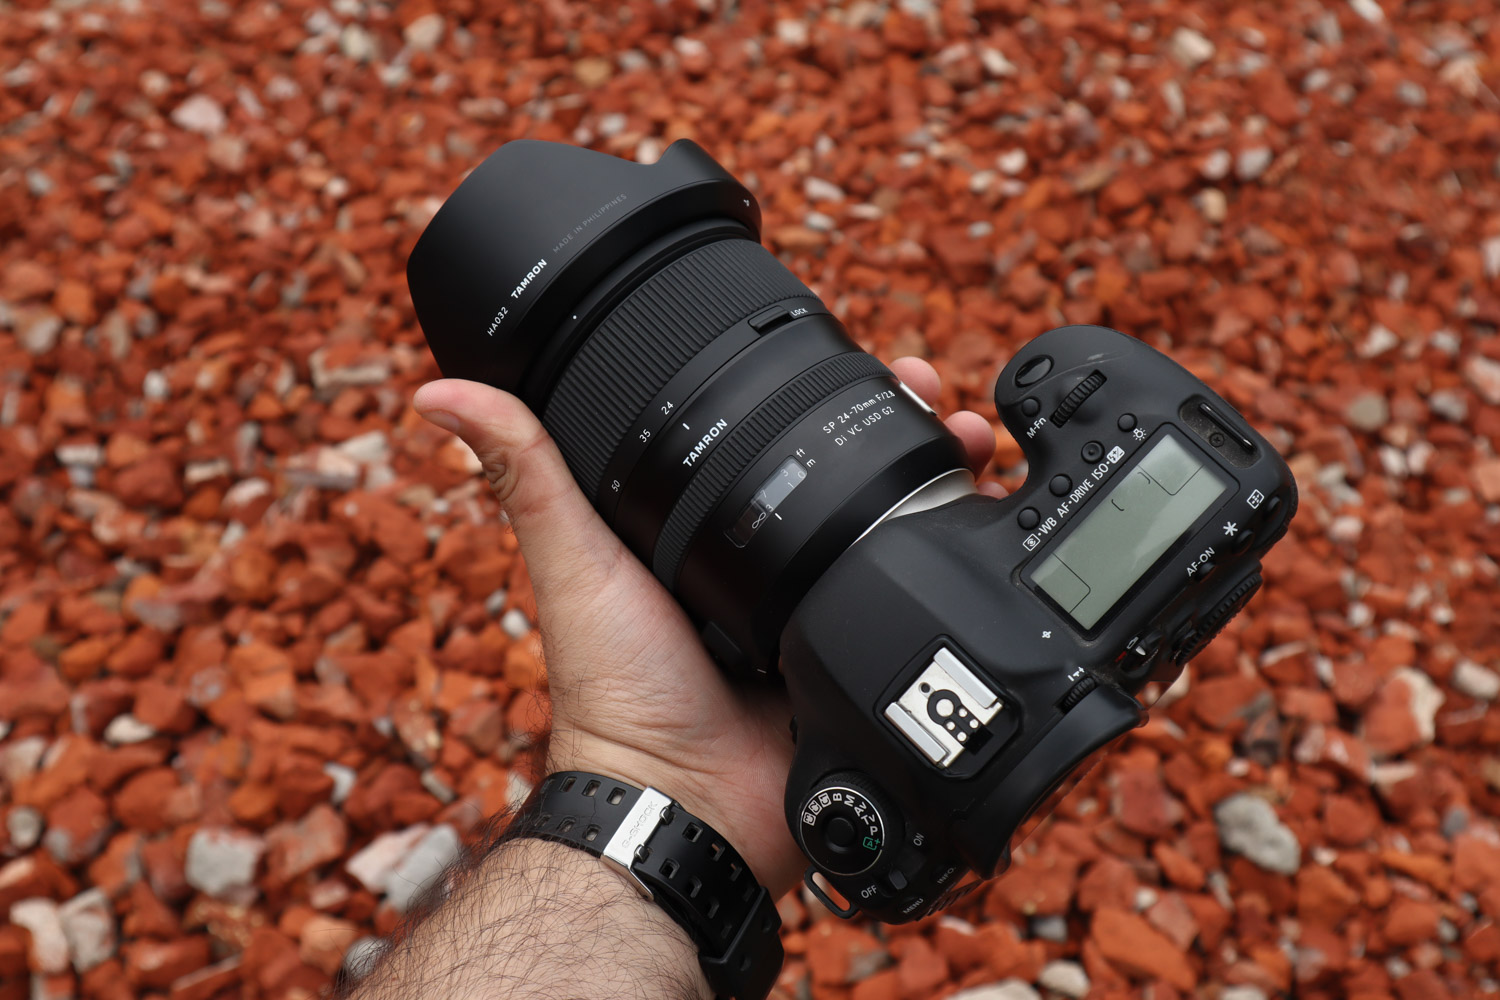 https://i1.wp.com/digital-photography-school.com/wp-content/uploads/2019/03/tamron-2470mm-f2.8-lens-review-1.jpg?resize=1500%2C1000&ssl=1